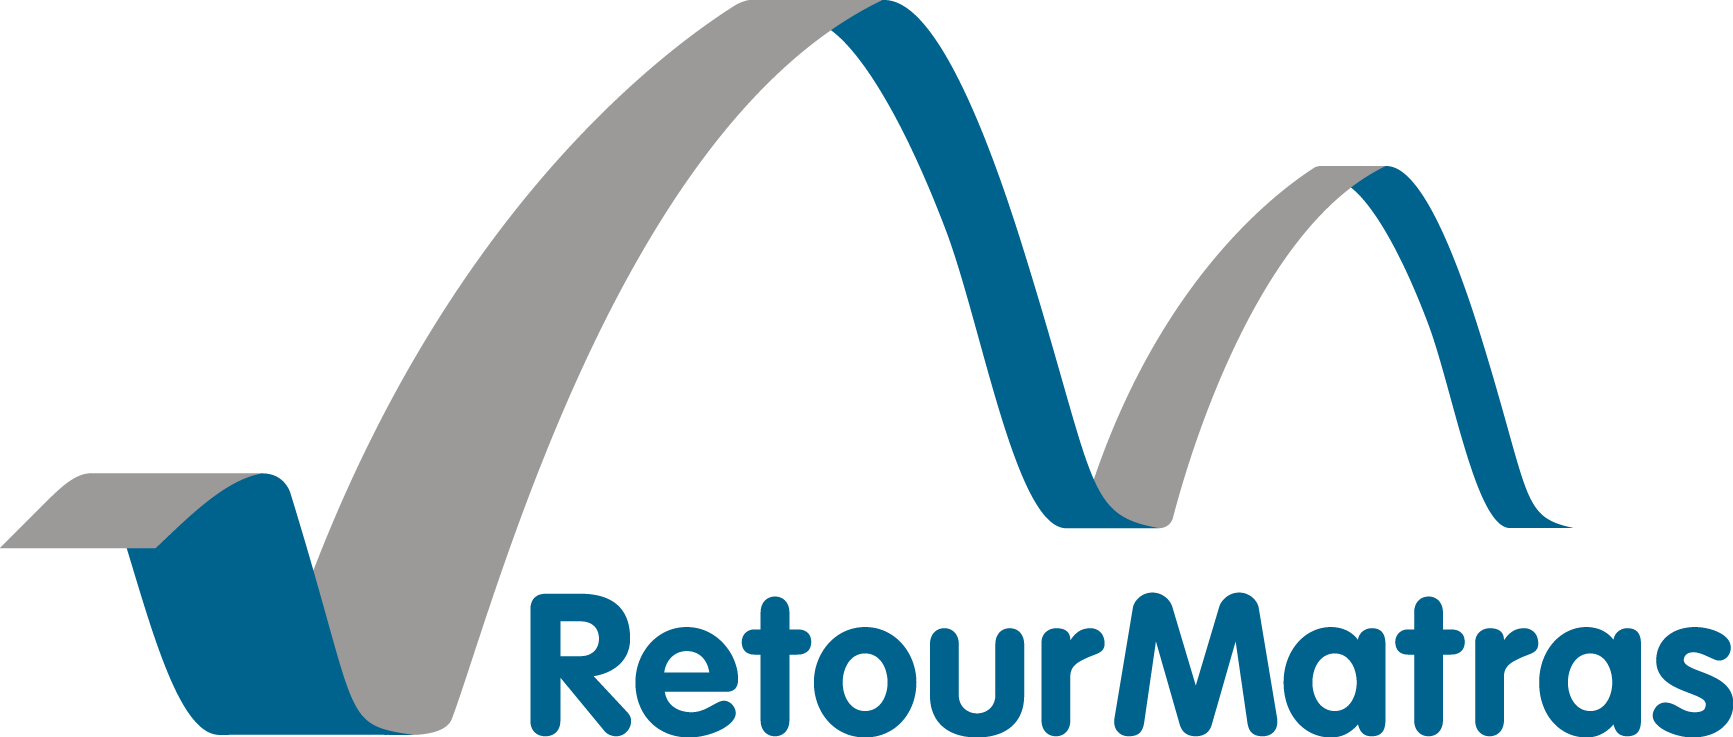 RetourMatras-100% matrasrecycling